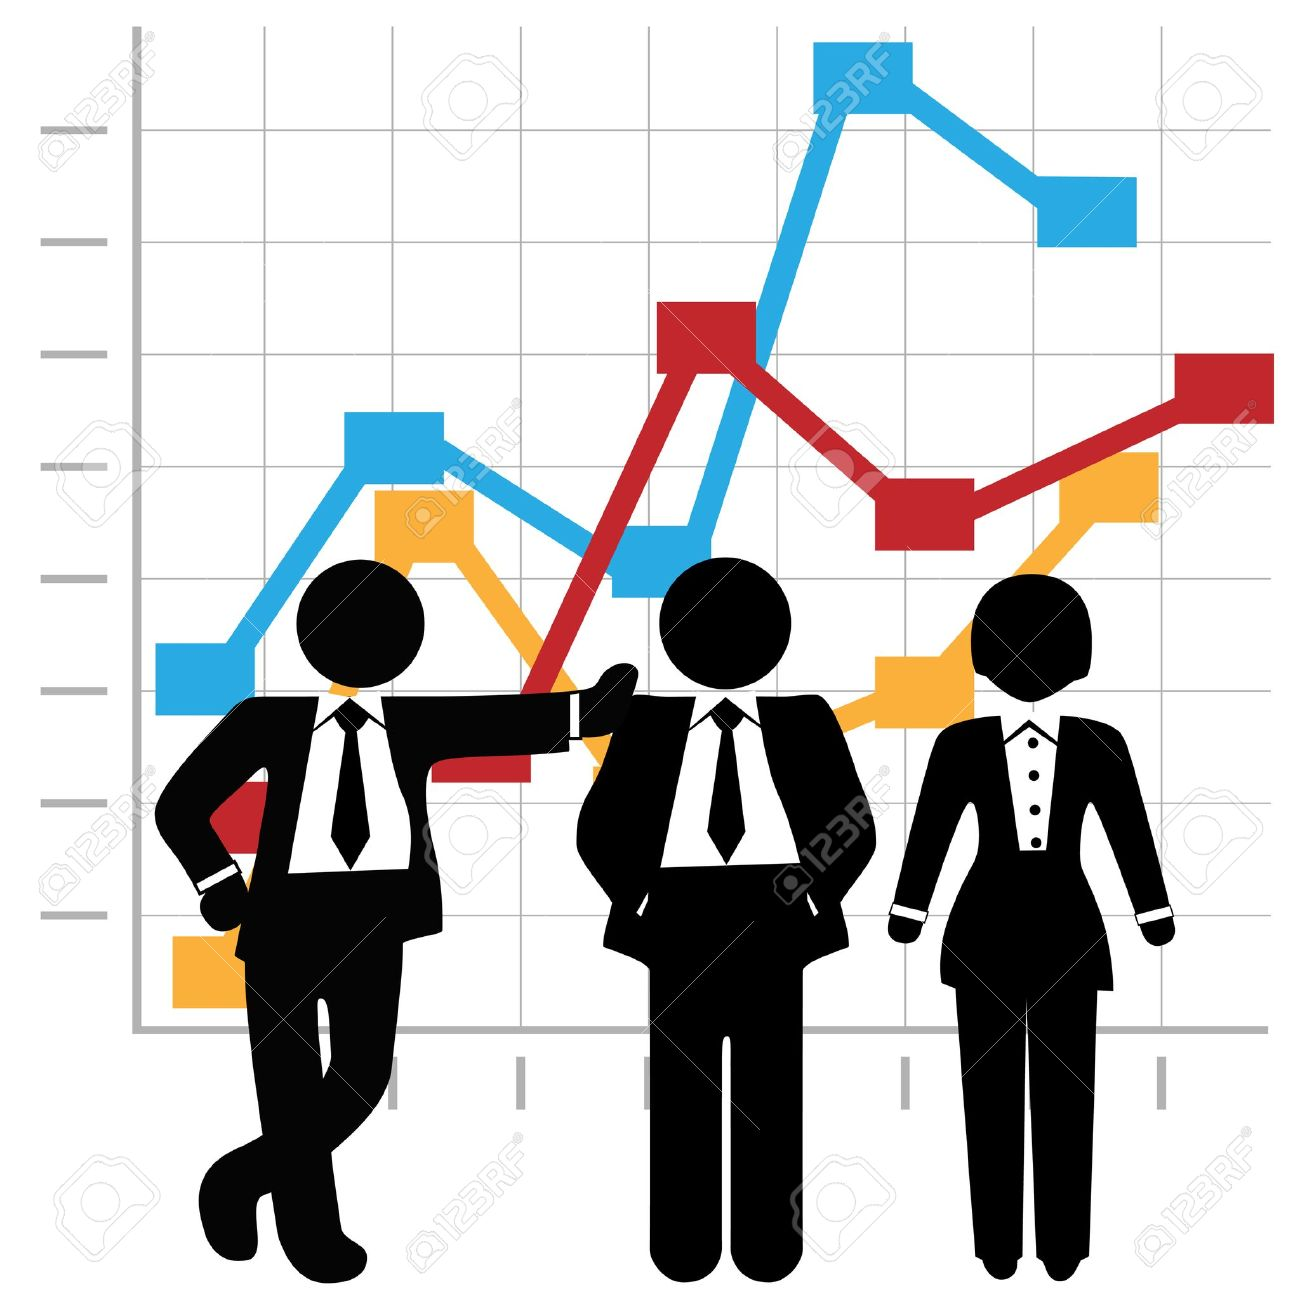 Symbols Of A Team Of 3 Sales People Stand In Front Of A Business.